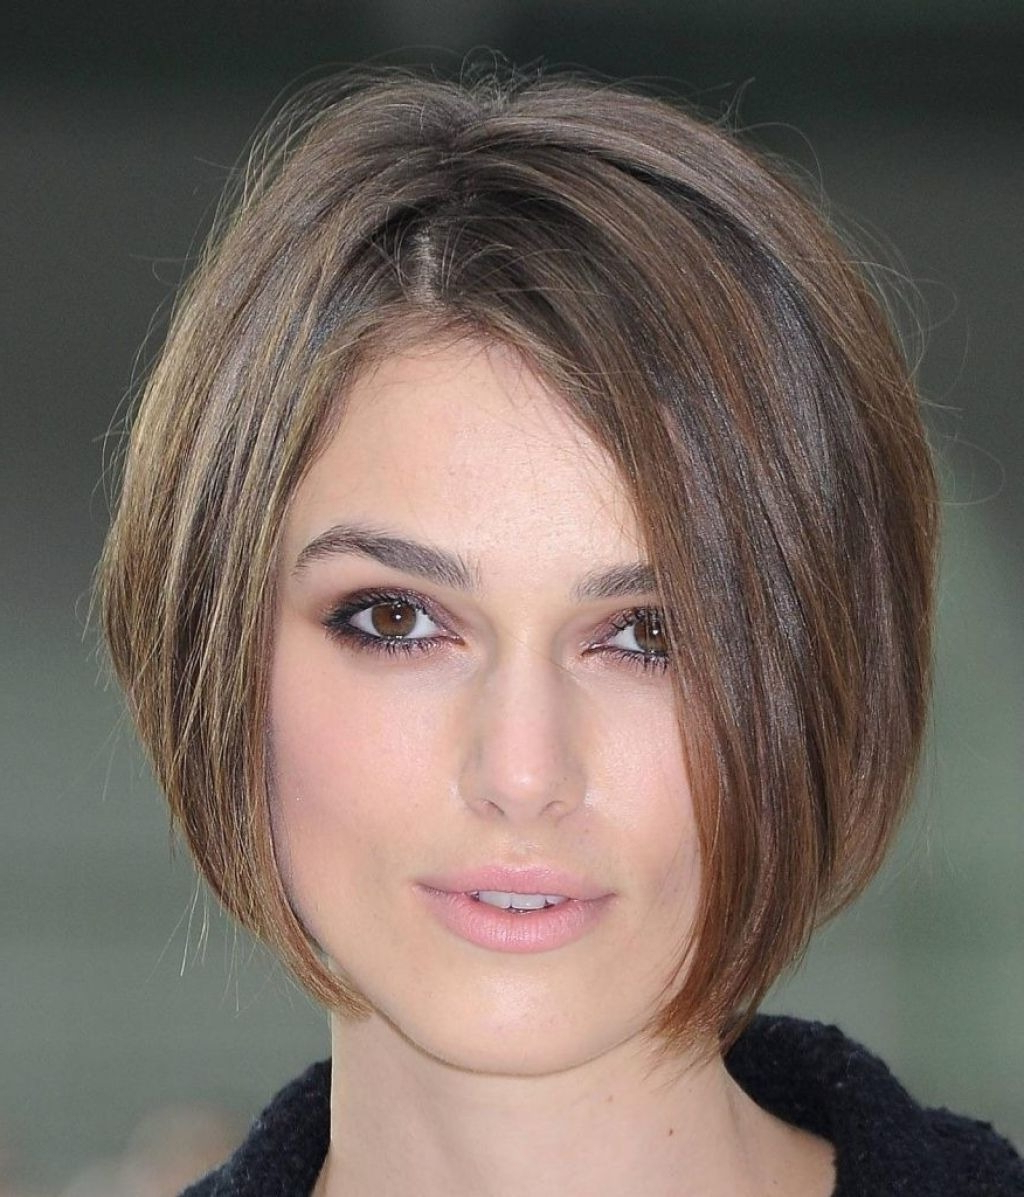 Trendy Short Hairstyles Round Face Fine Hair For Everyone | Hairstyles With Regard To Trendy Short Haircuts For Fine Hair (View 15 of 25)